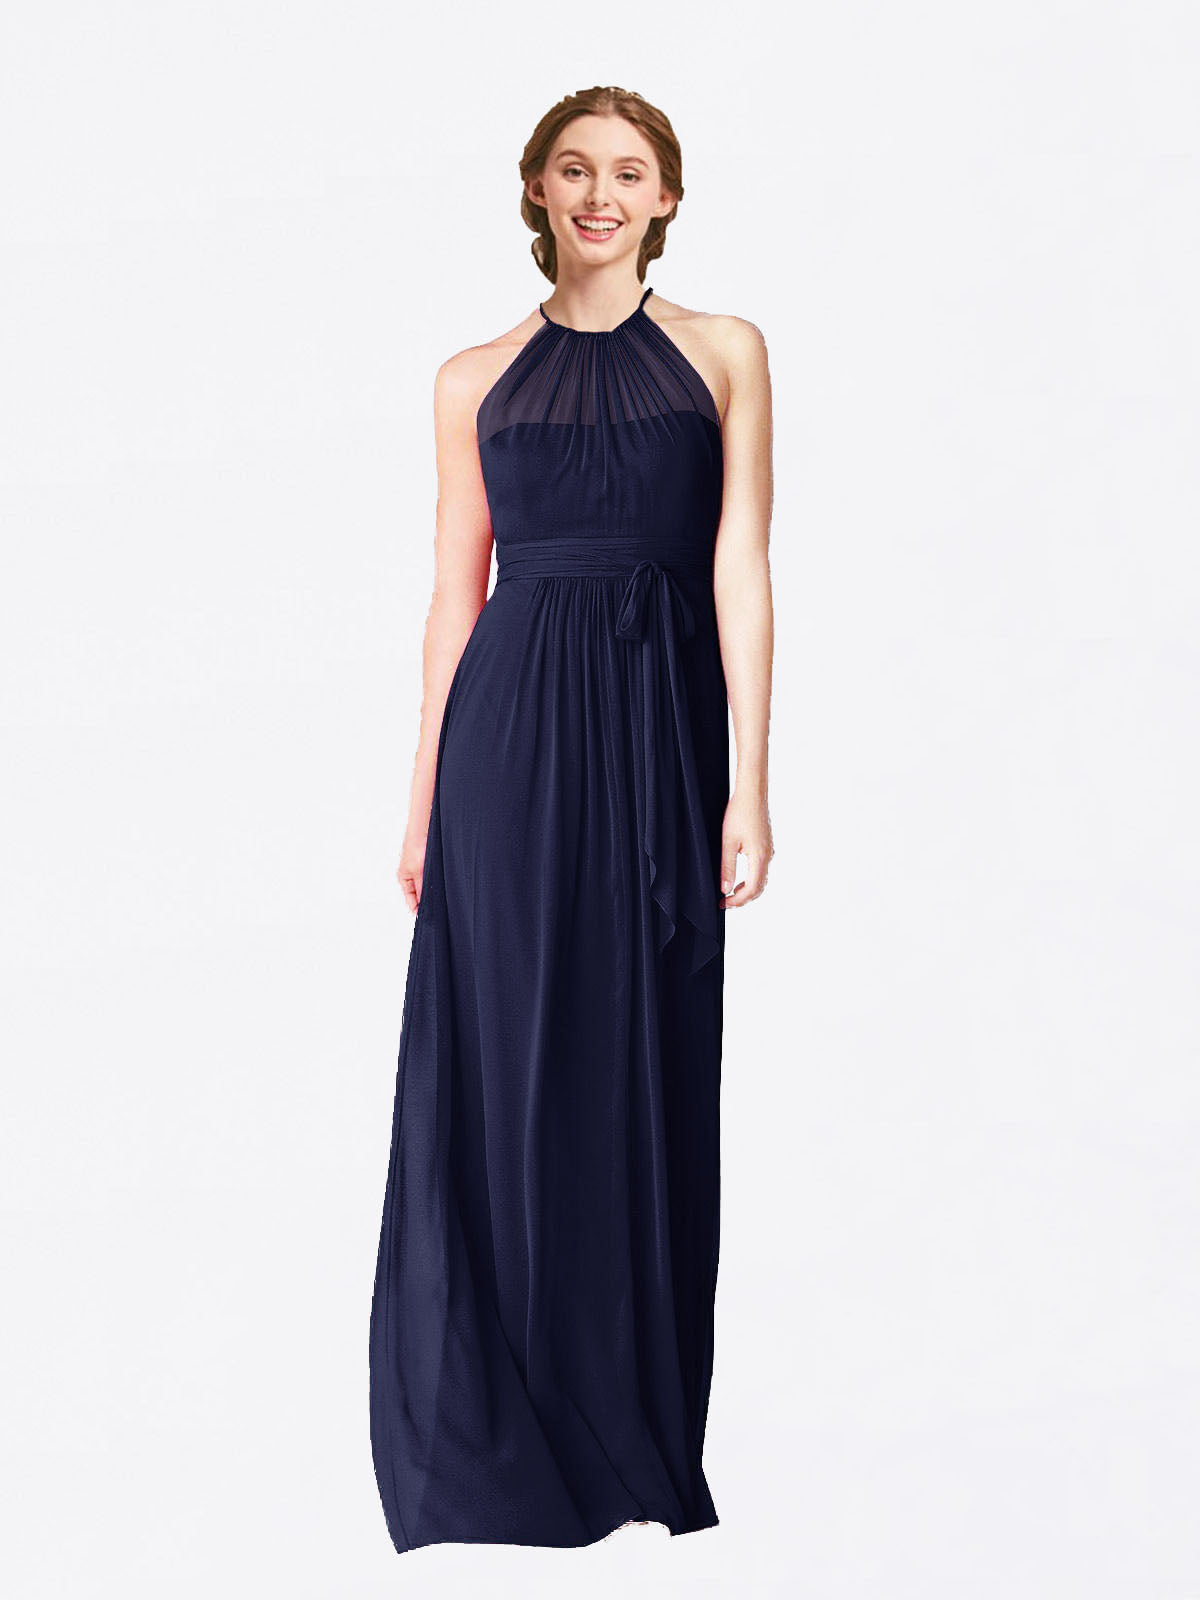 Long A-Line Halter Sleeveless Dark Navy Chiffon Bridesmaid Dress Laura